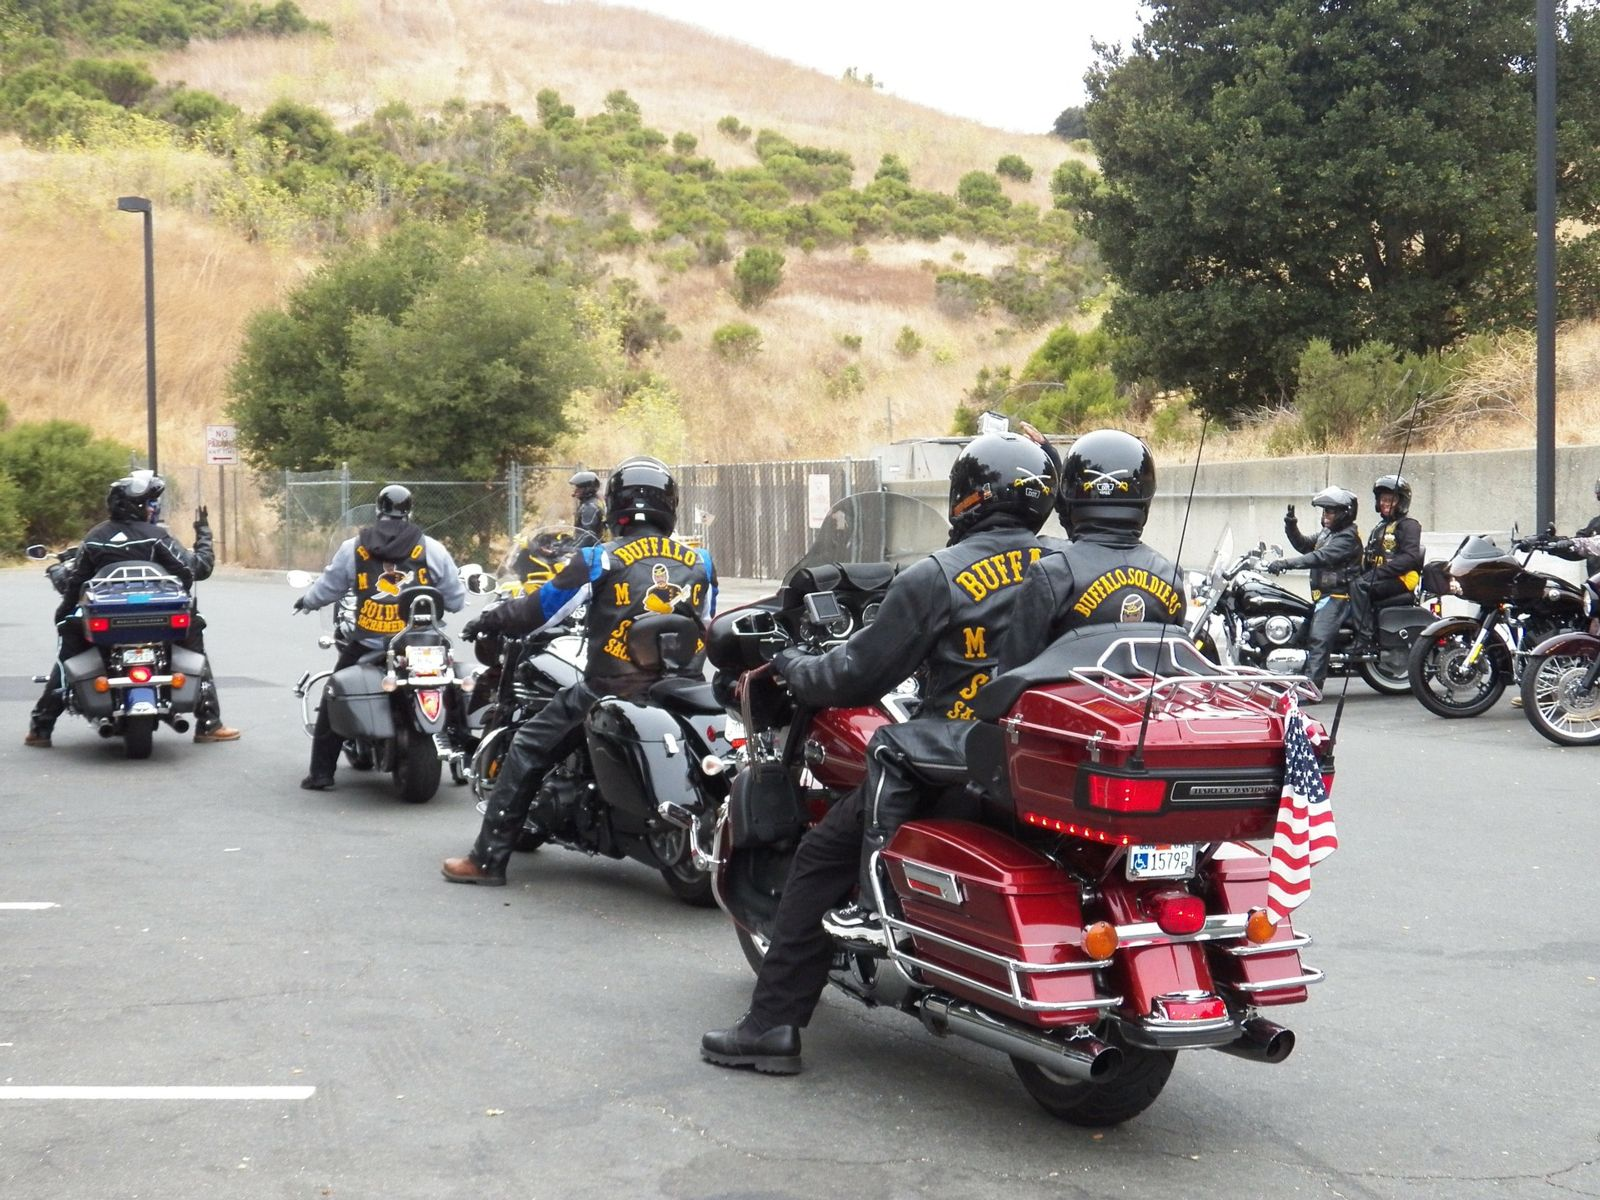 Motorcycle Group getting into formation for a ride